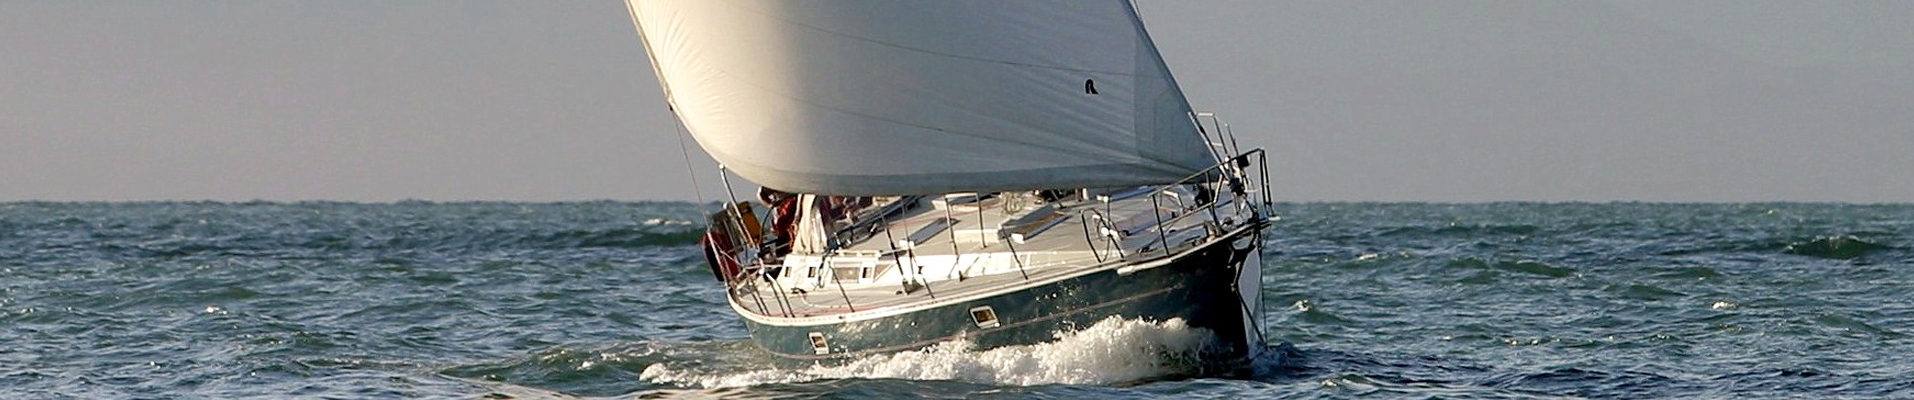 Private-Yachting-Trips-Tasman-Bay